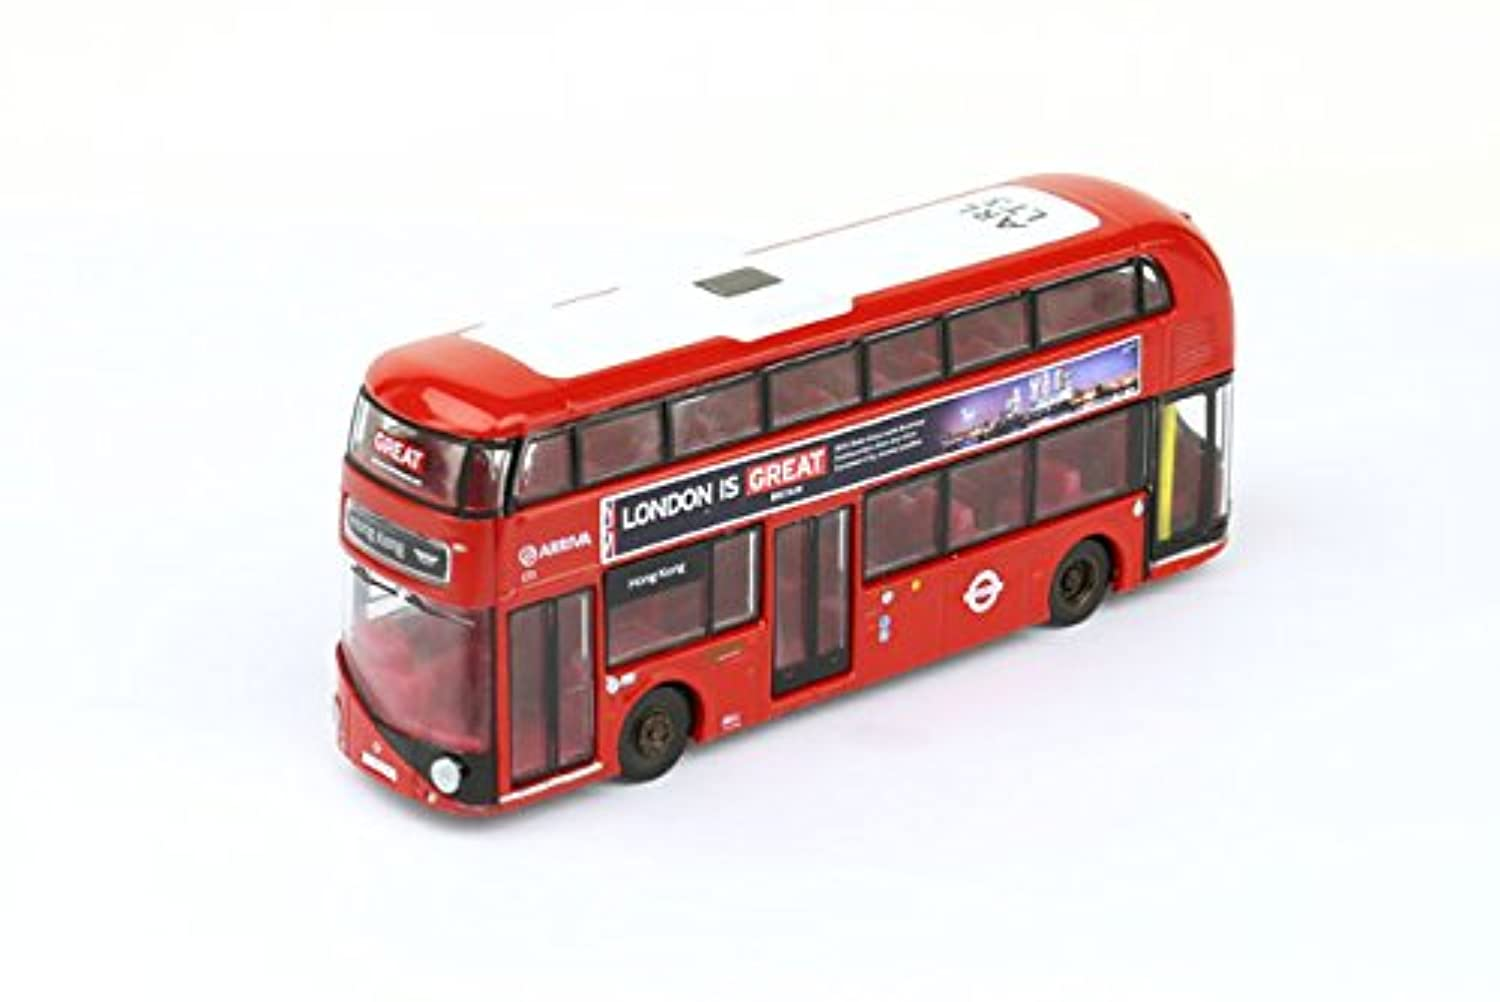 TINY No.71 新型 ルートマスター London is Great 完成品